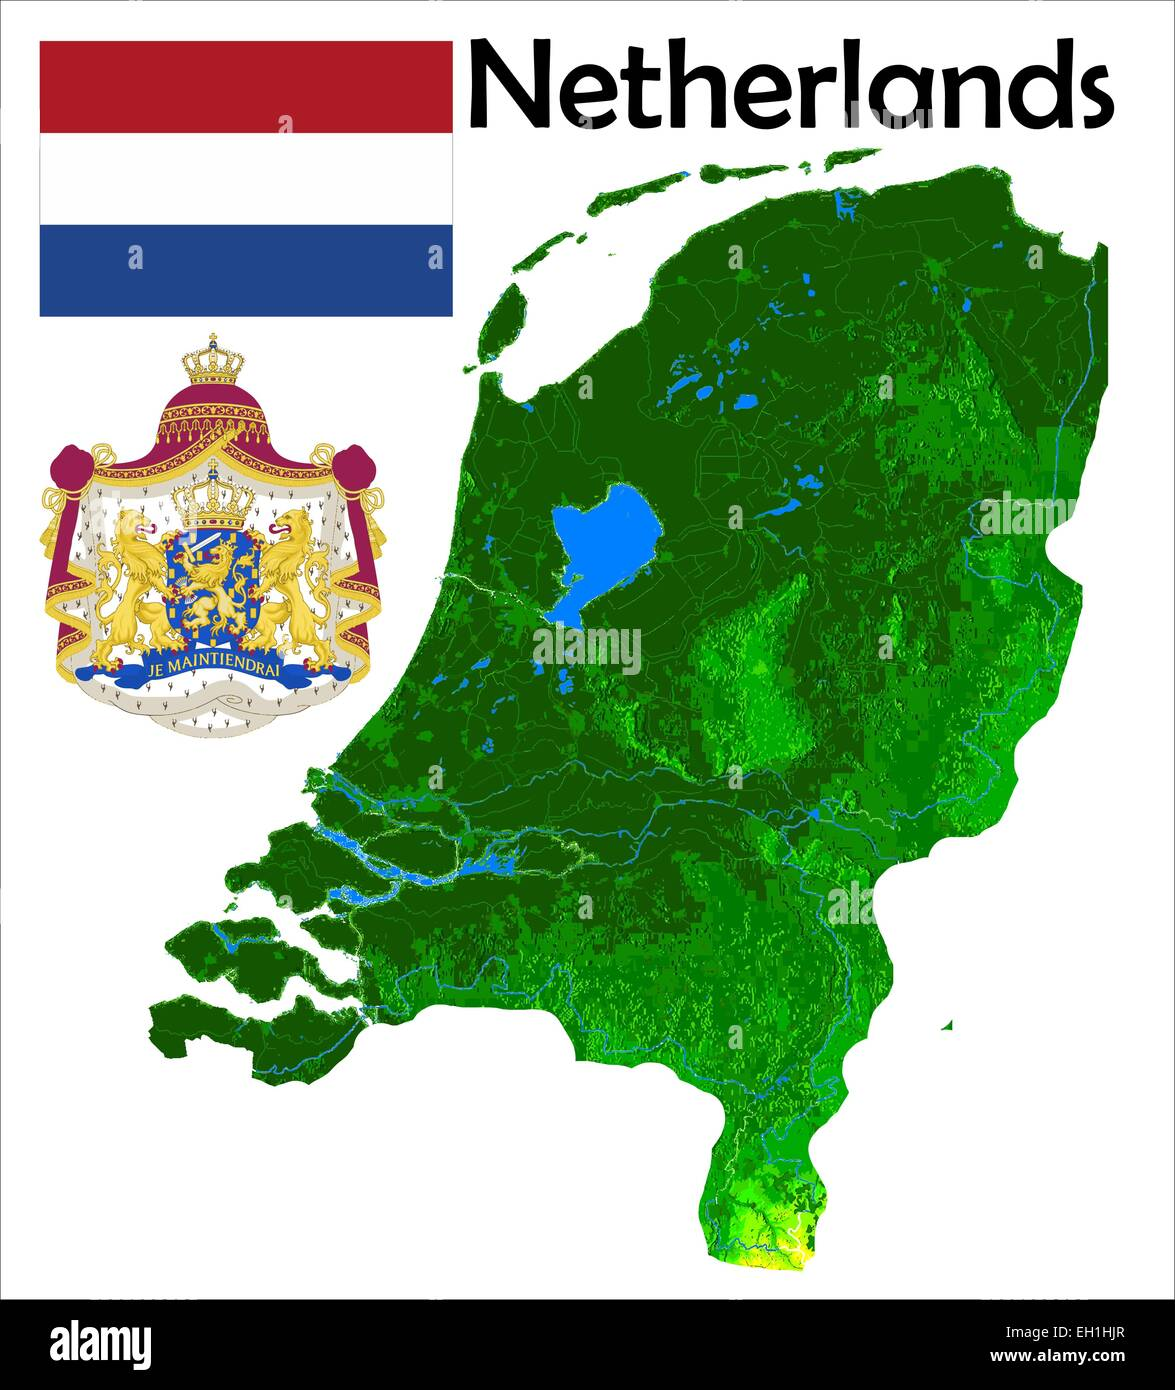 Map Of Netherlands Stock Photos & Map Of Netherlands Stock Images ...